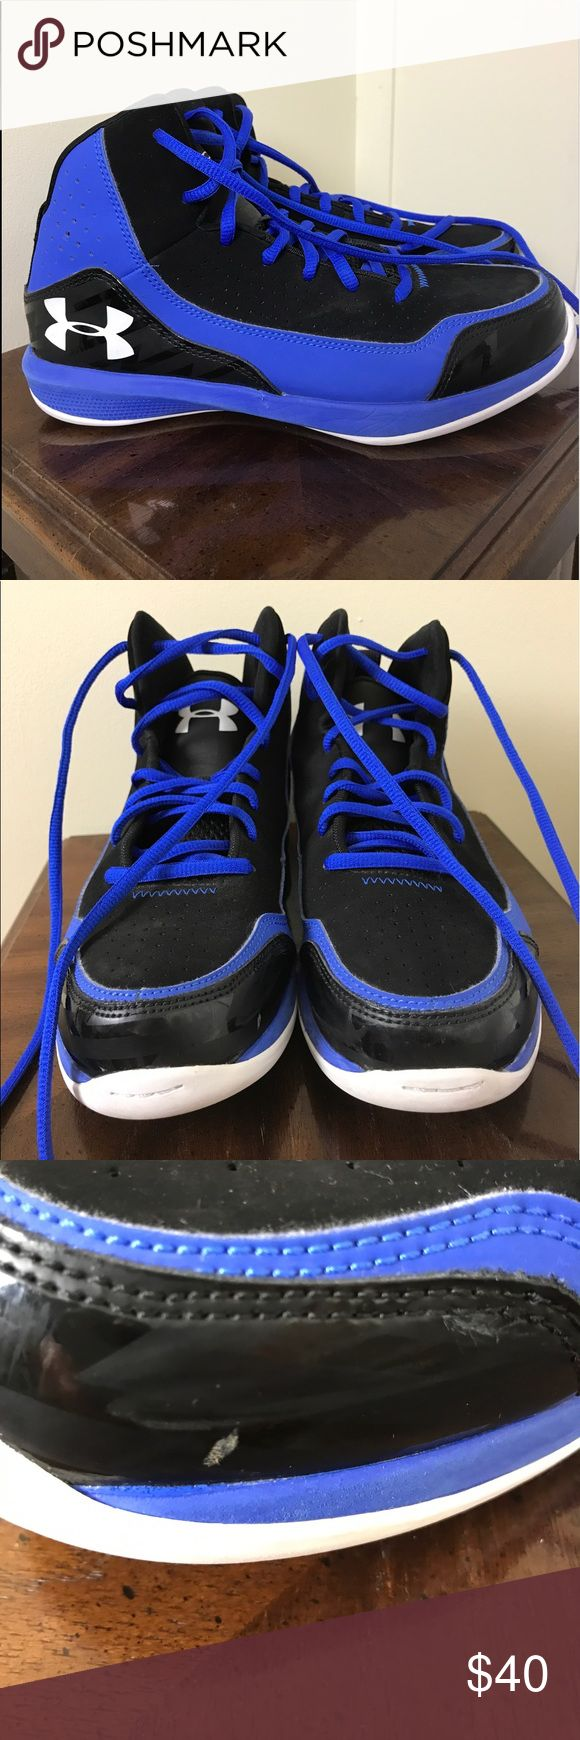 Nike Volleyball Shoes Laces Breaking